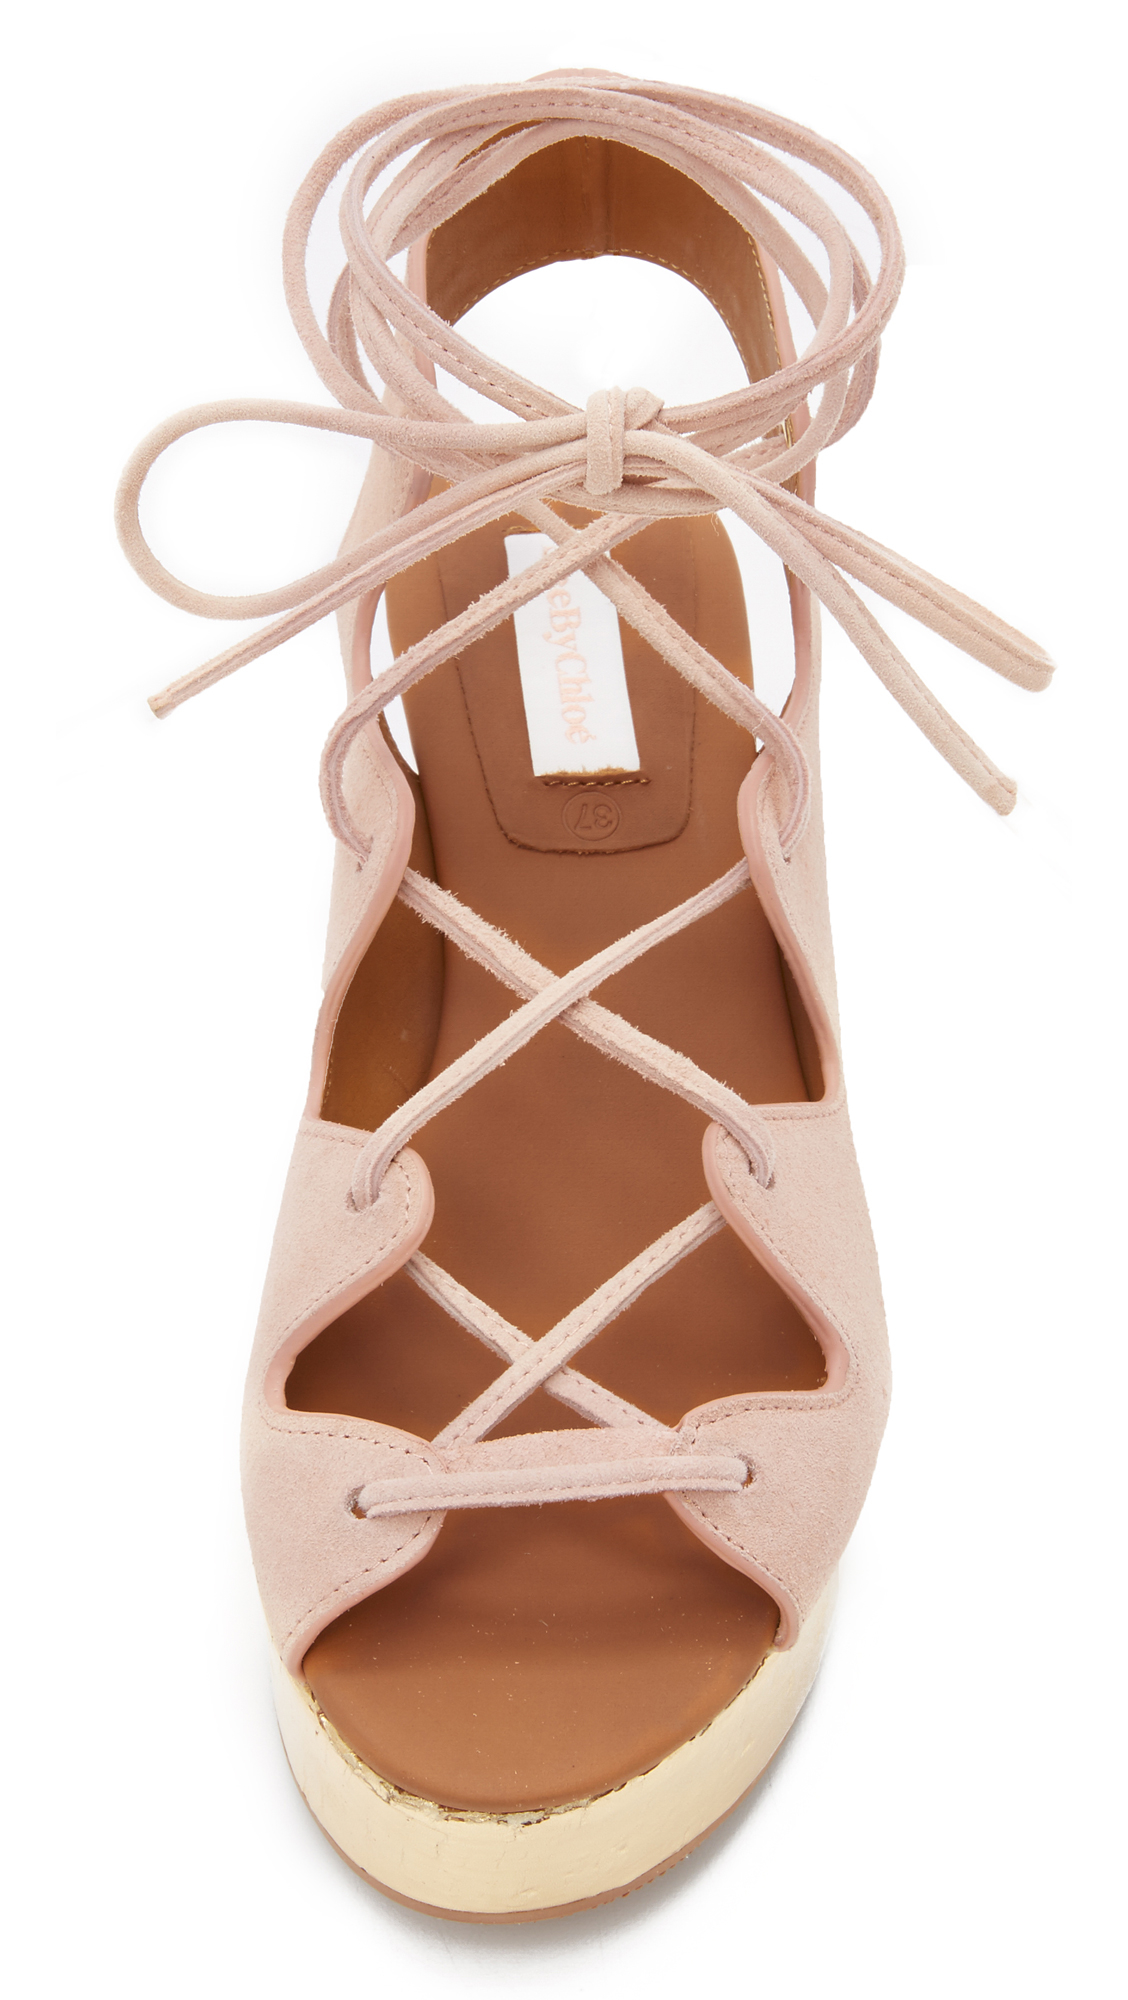 7c07aa73f03 Lyst - See By Chloé Liana Platform Lace Up Sandals in Natural